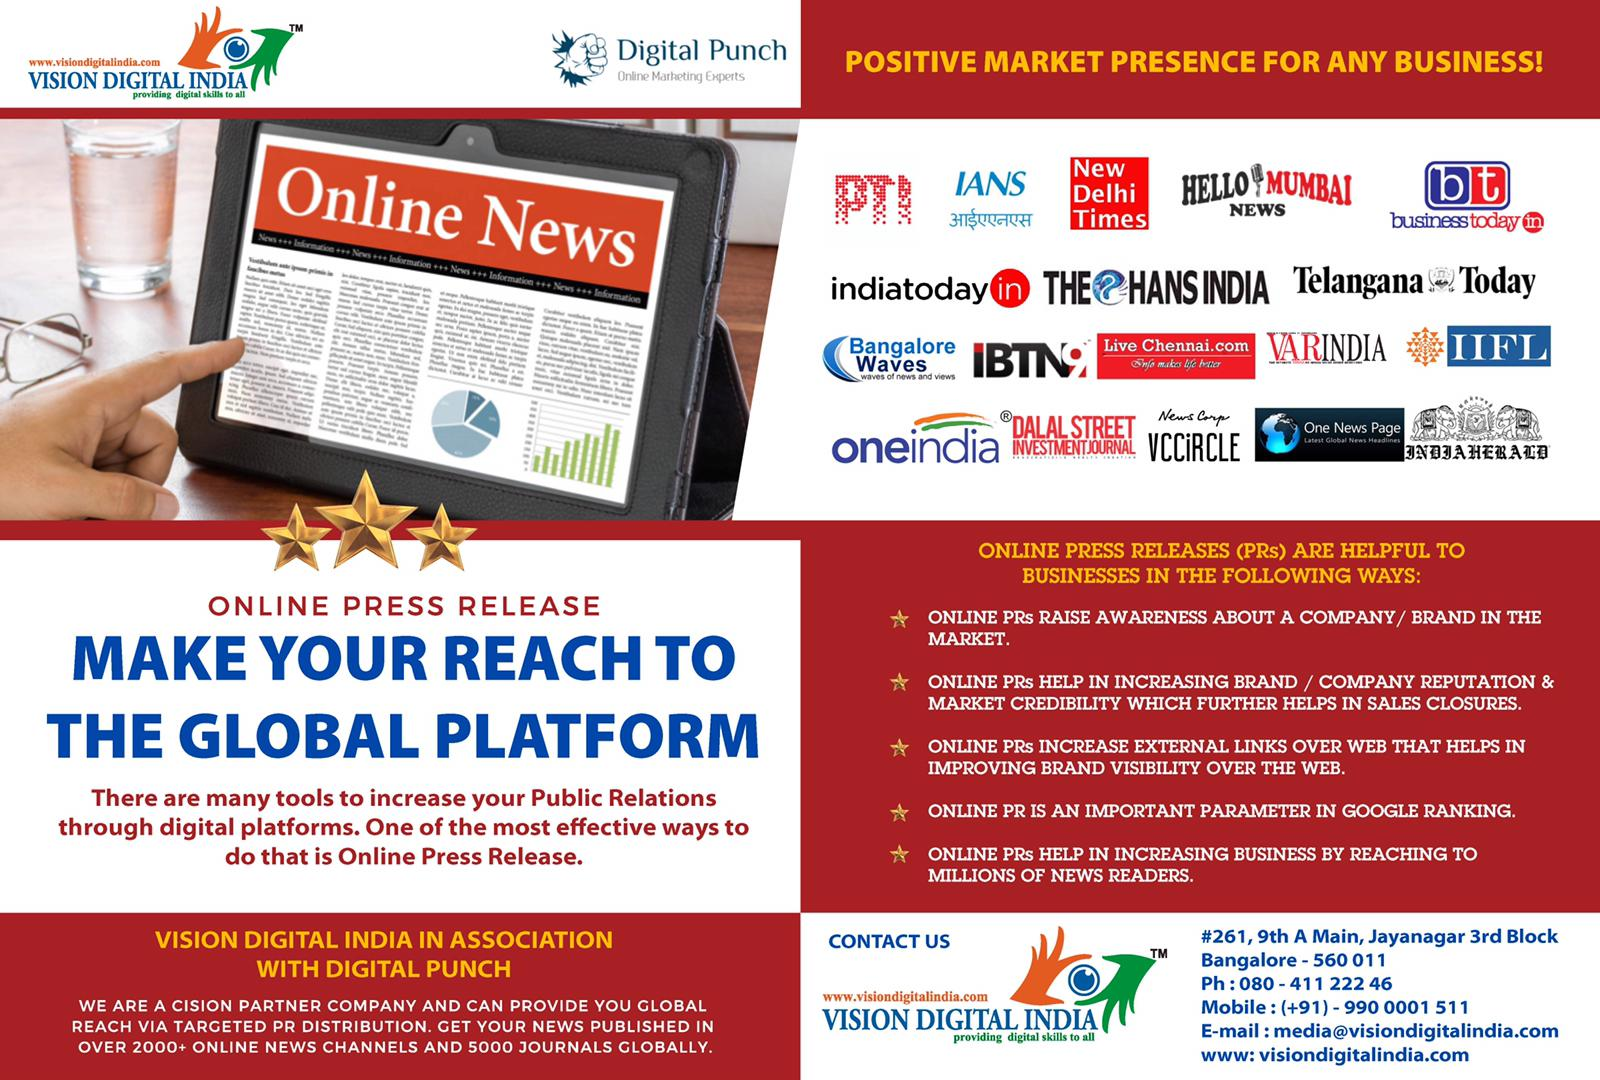 Vision Digital India - Bangalore | Provides the best Data